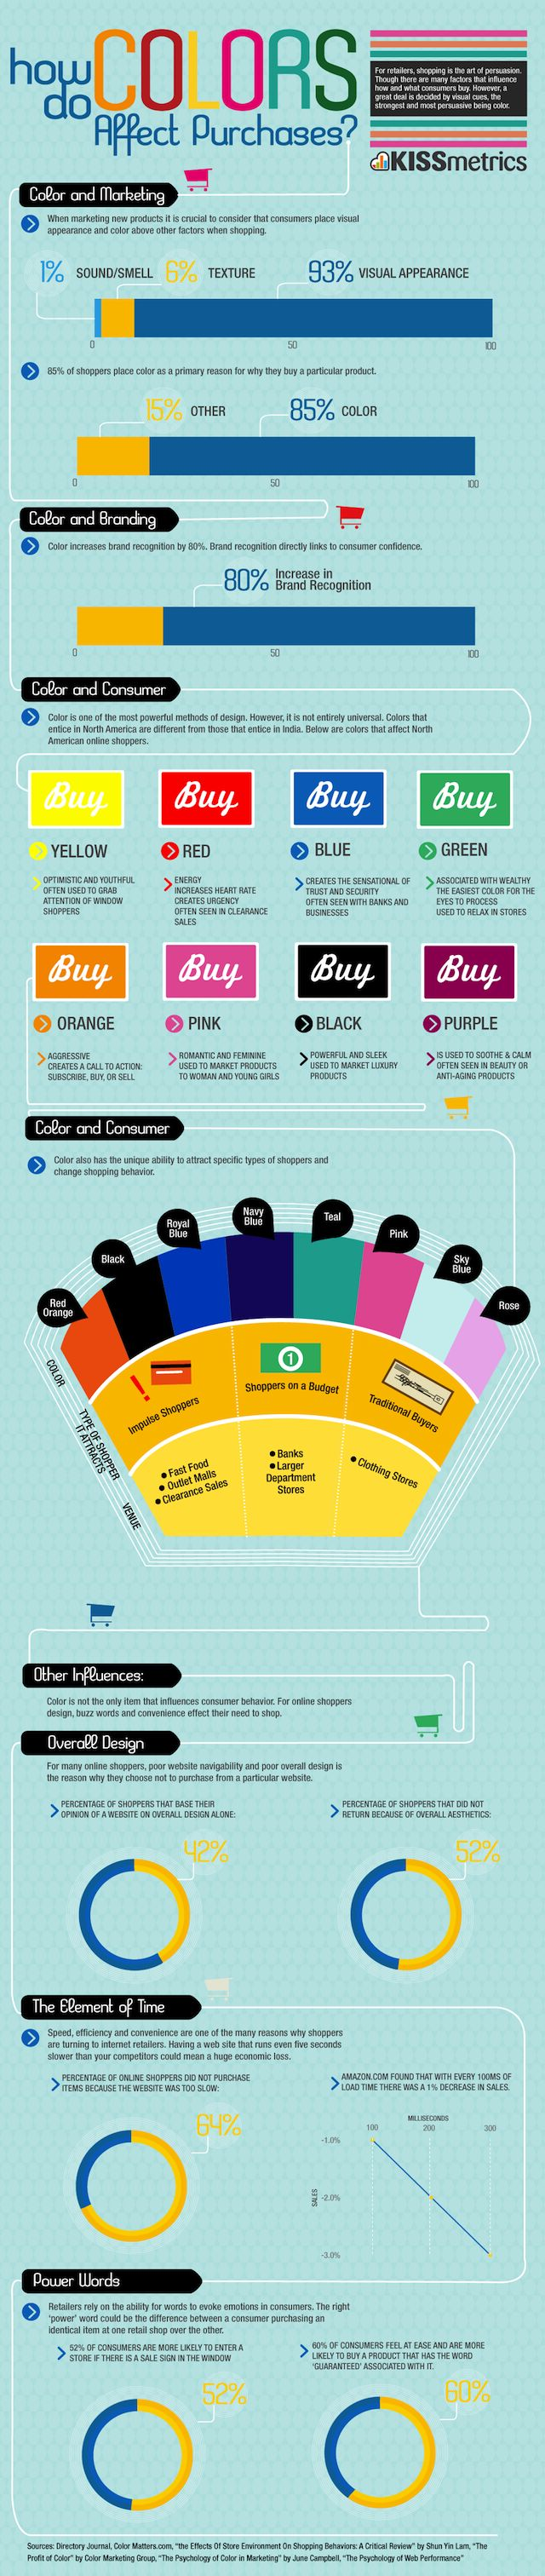 Infographic: Do Colors Impact Online Purchase Behavior? Yes, Virginia, they do! Your color choices will make an impact on your brand identity. Do your research, and choose wisely! I help small business owners identify and cultivate the brand identity they desire for their biz, and lend a professional designer's eye when you need a review of a work in progress. Contact me via my Google+ profile at https://plus.google.com/106203314085966263136/about